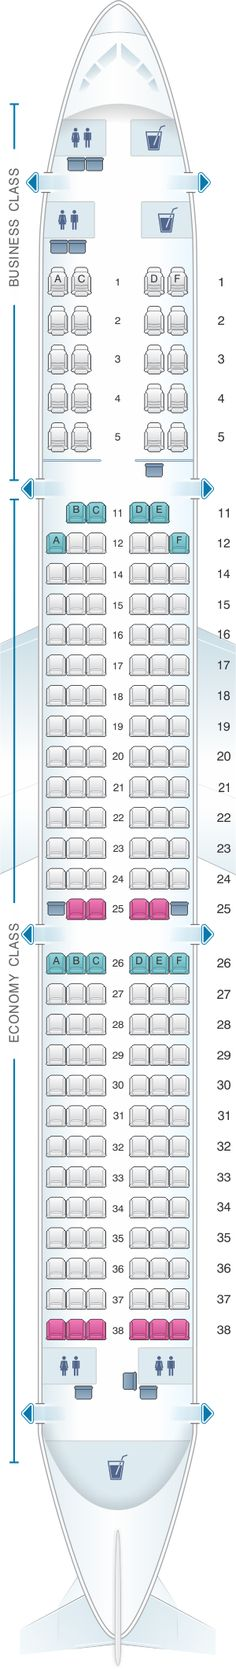 Seat Map Kingfisher Airlines Airbus A321 200 178PAX